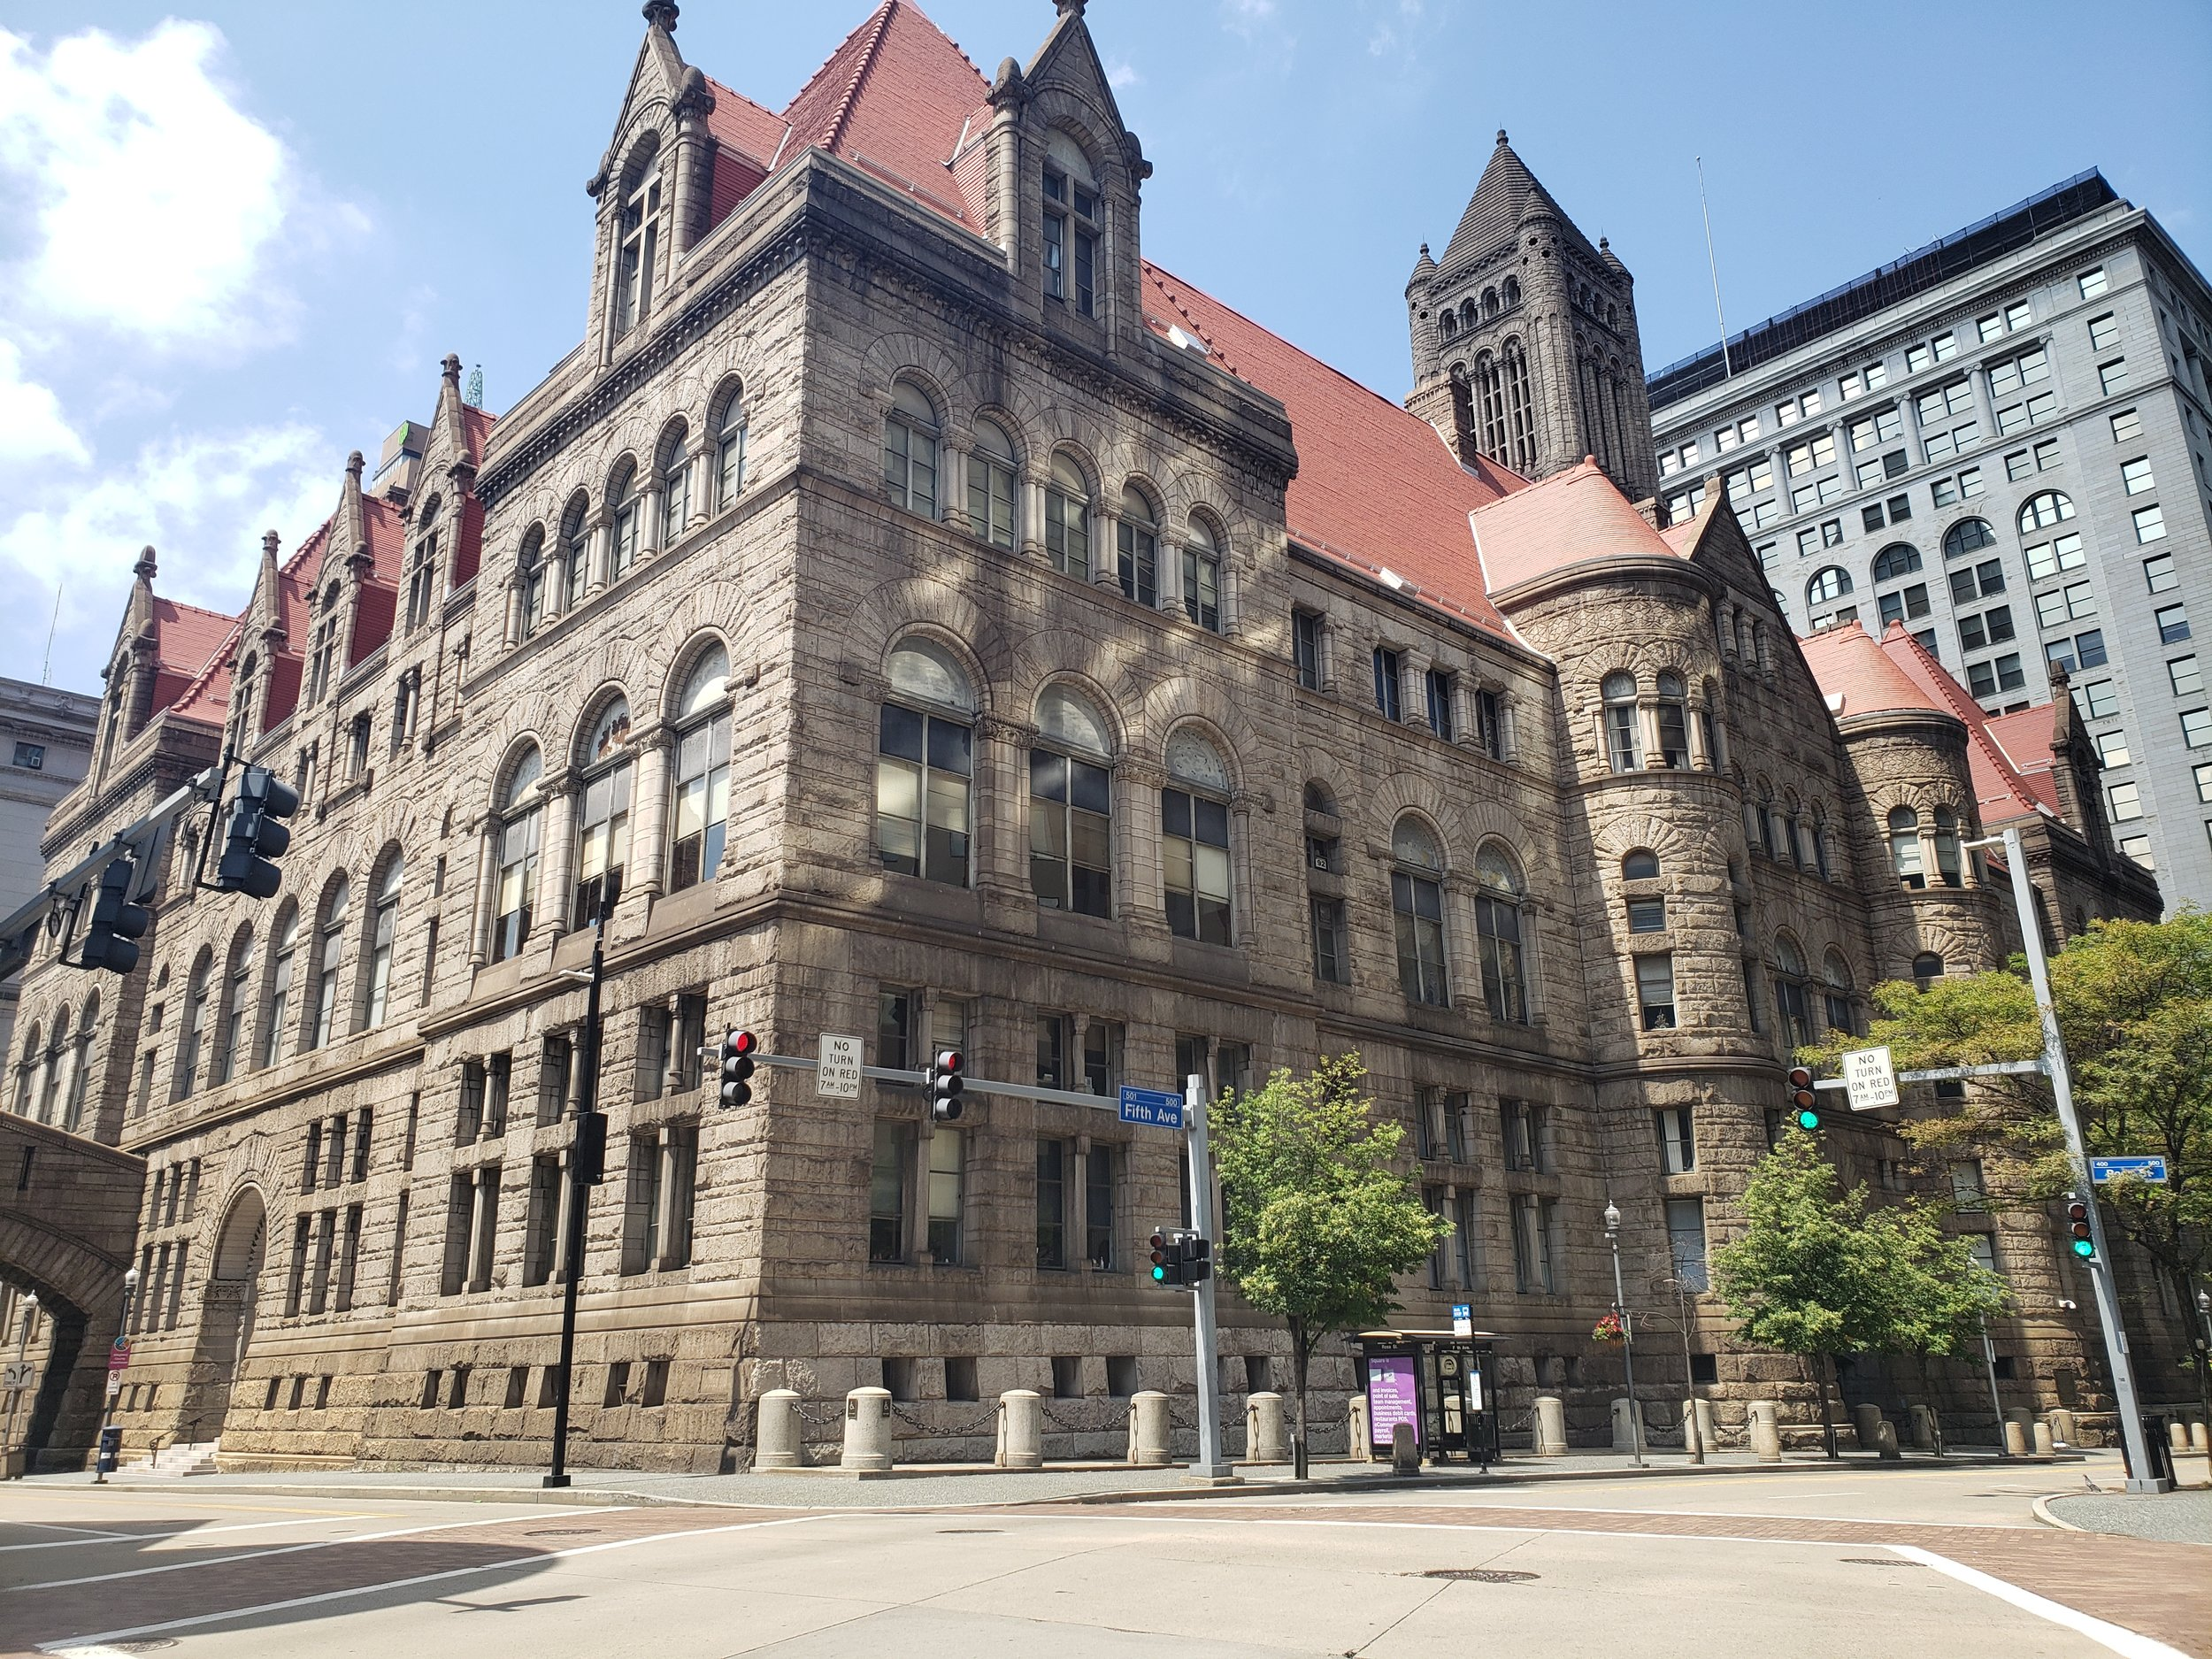 Allegheny County Courthouse & Jail